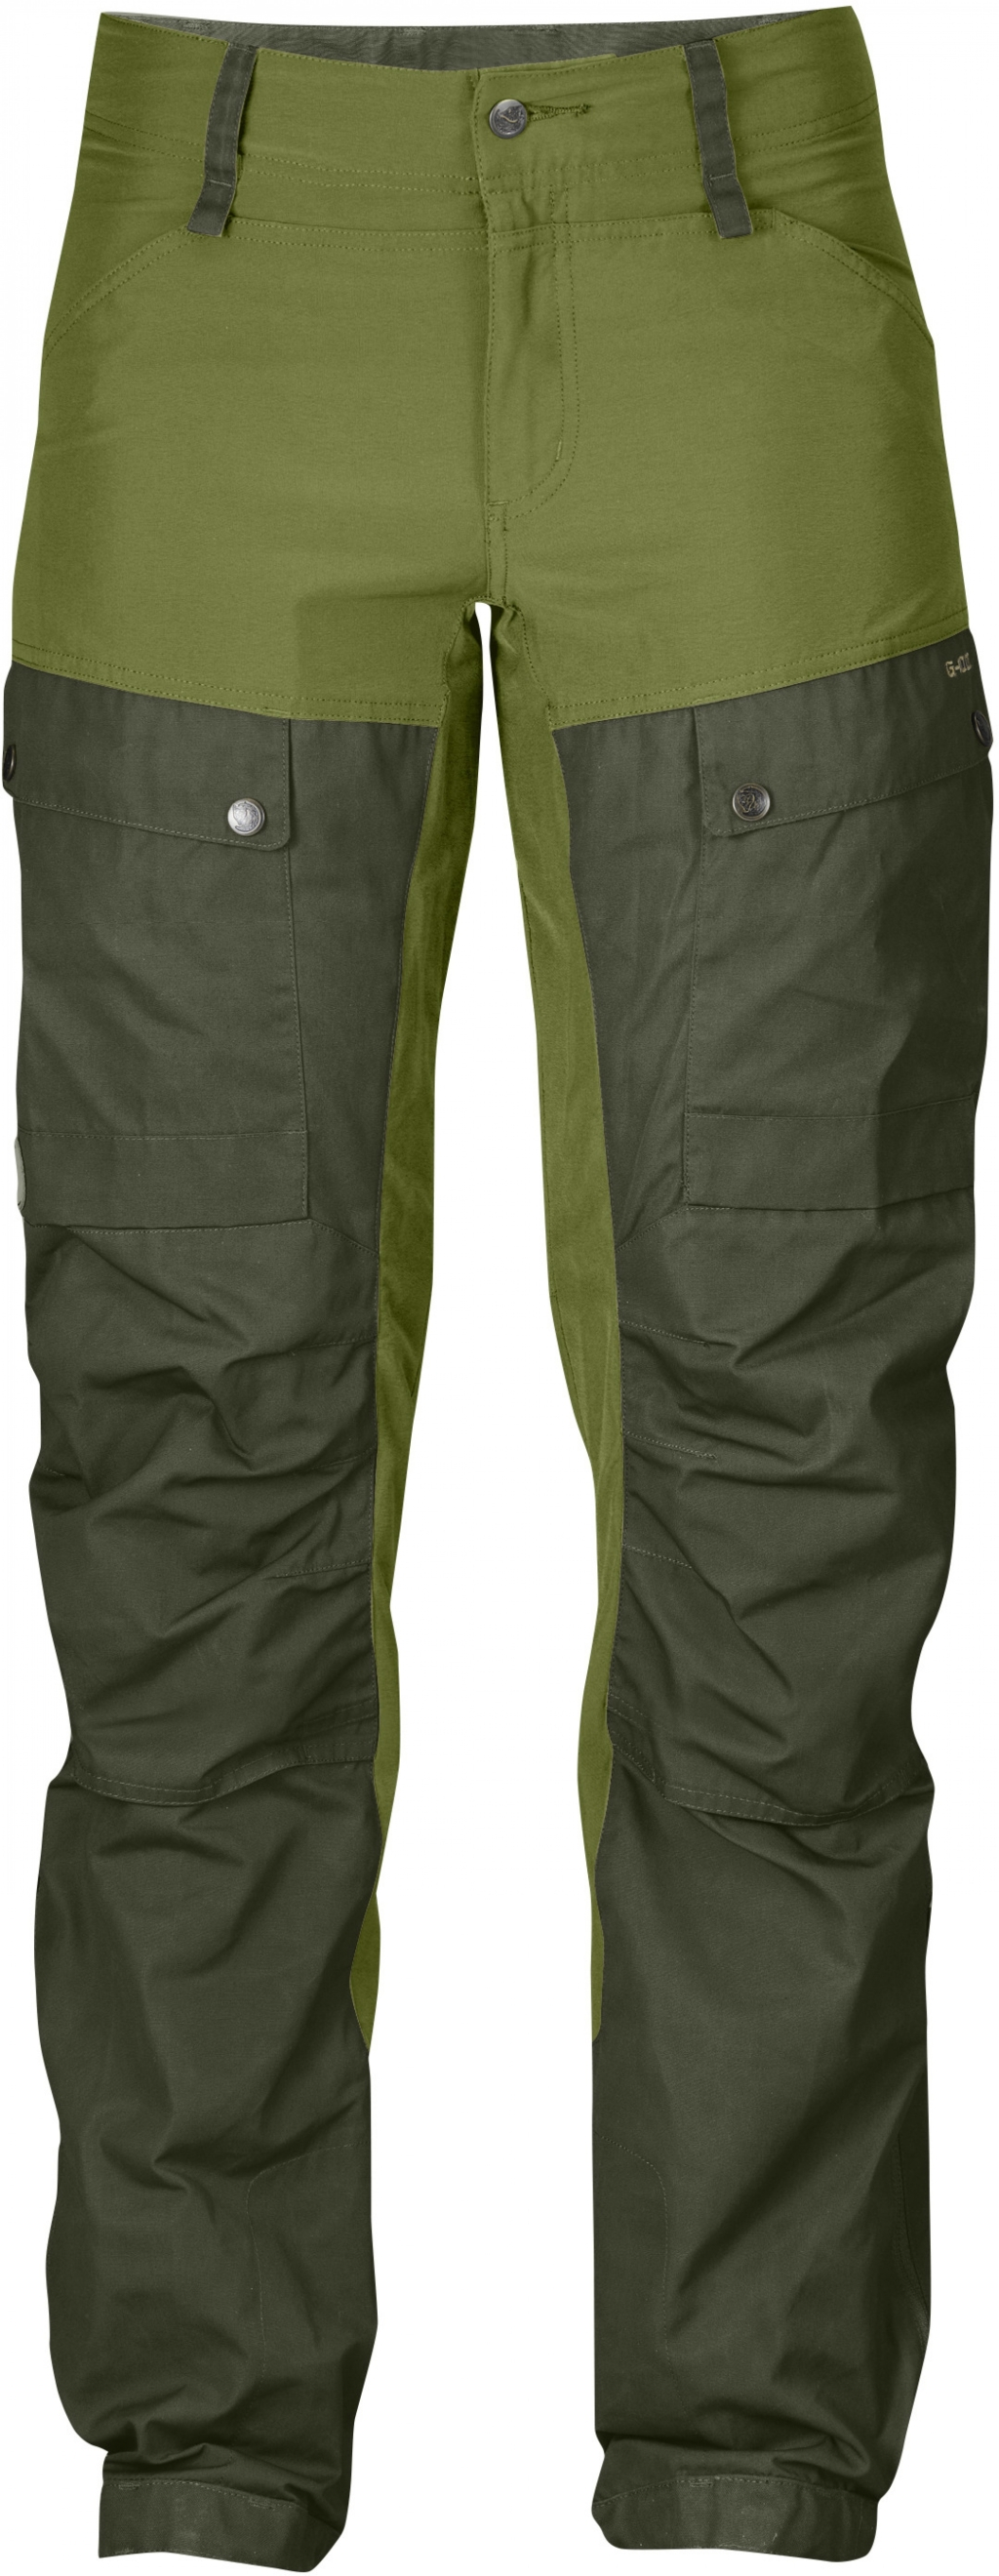 FjallRaven Keb Trousers W Curved Avocado-30